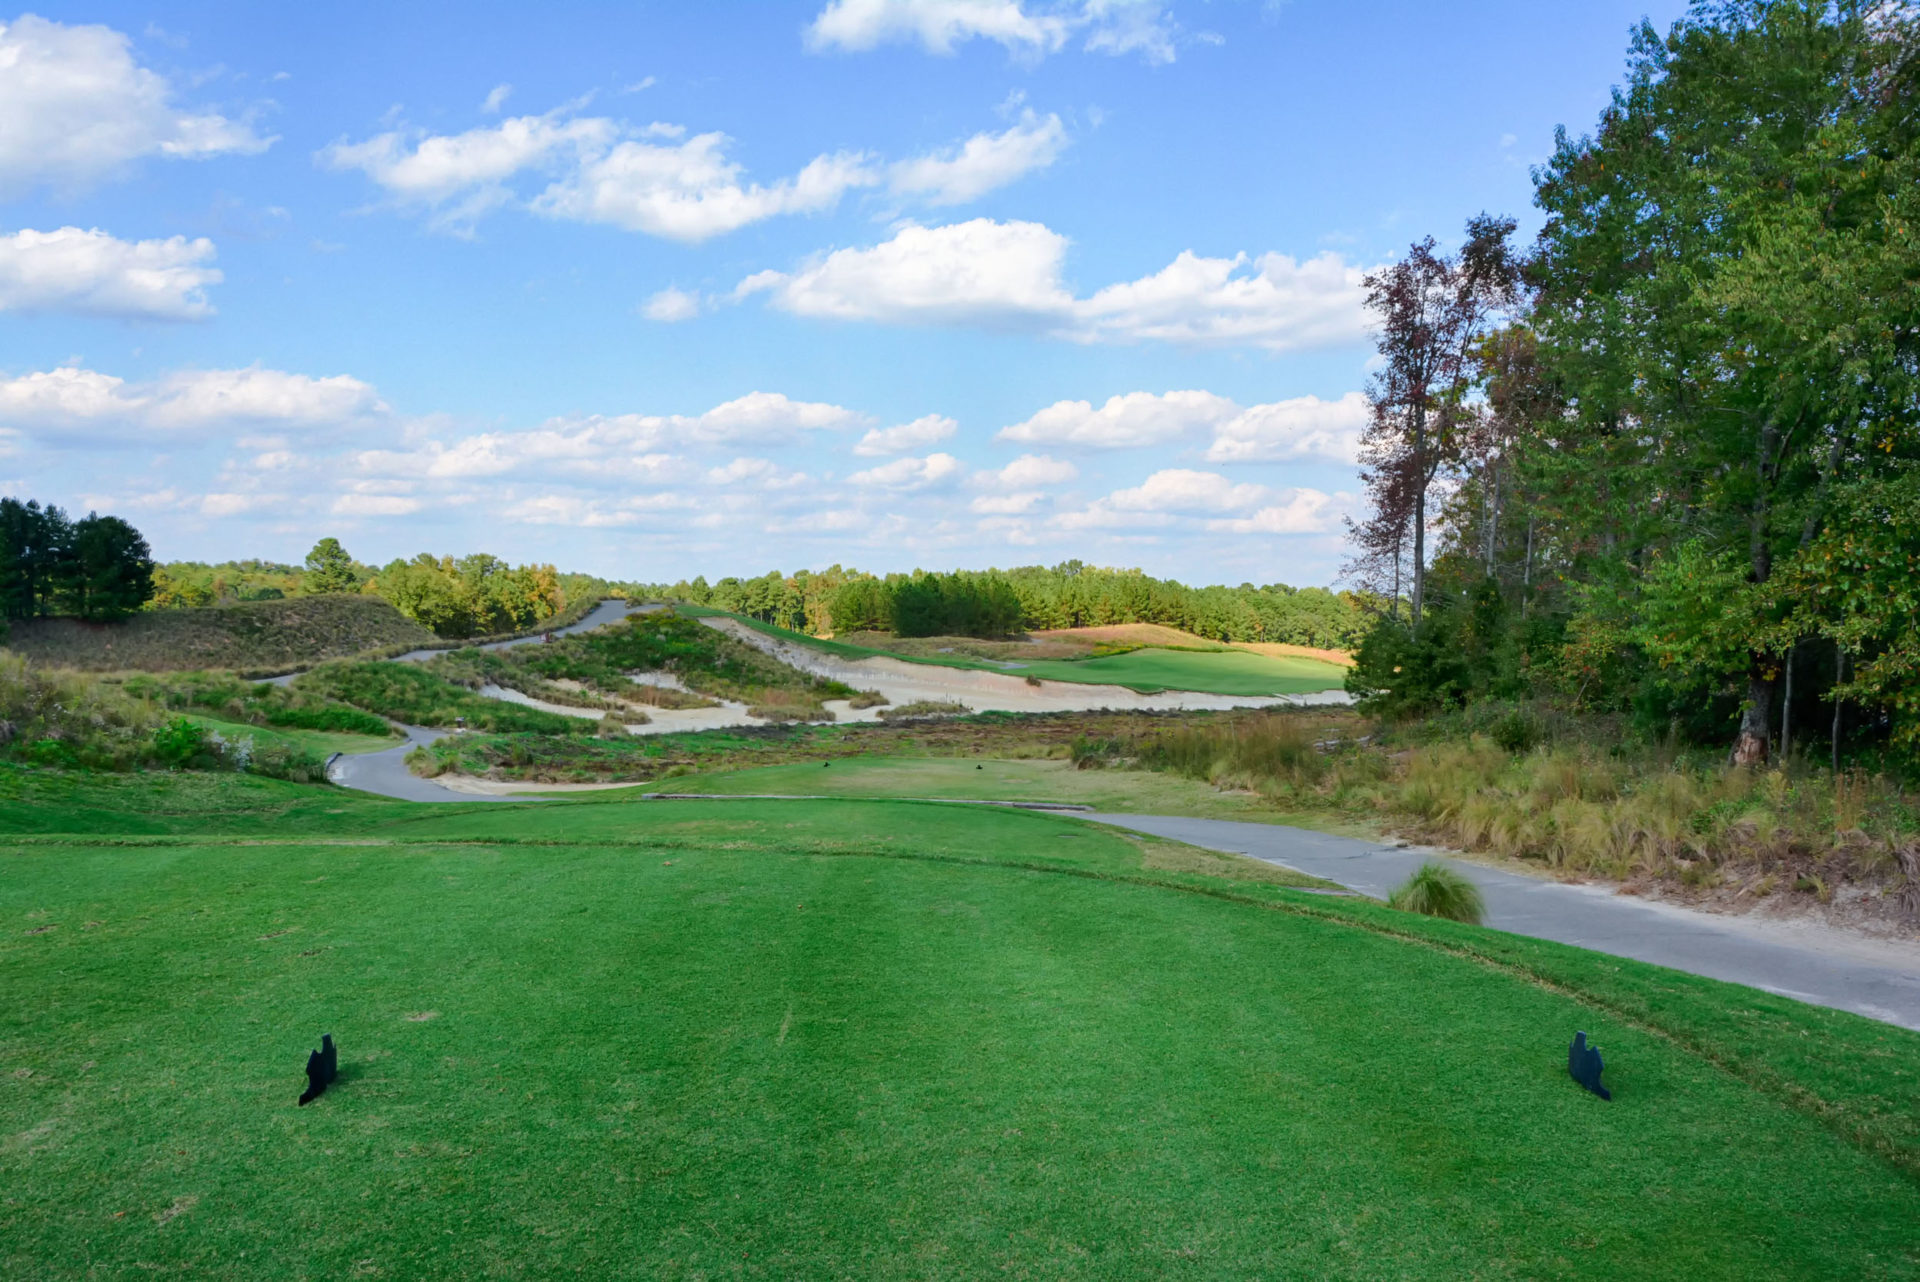 Hole 10 at Tobacco Road Golf Club